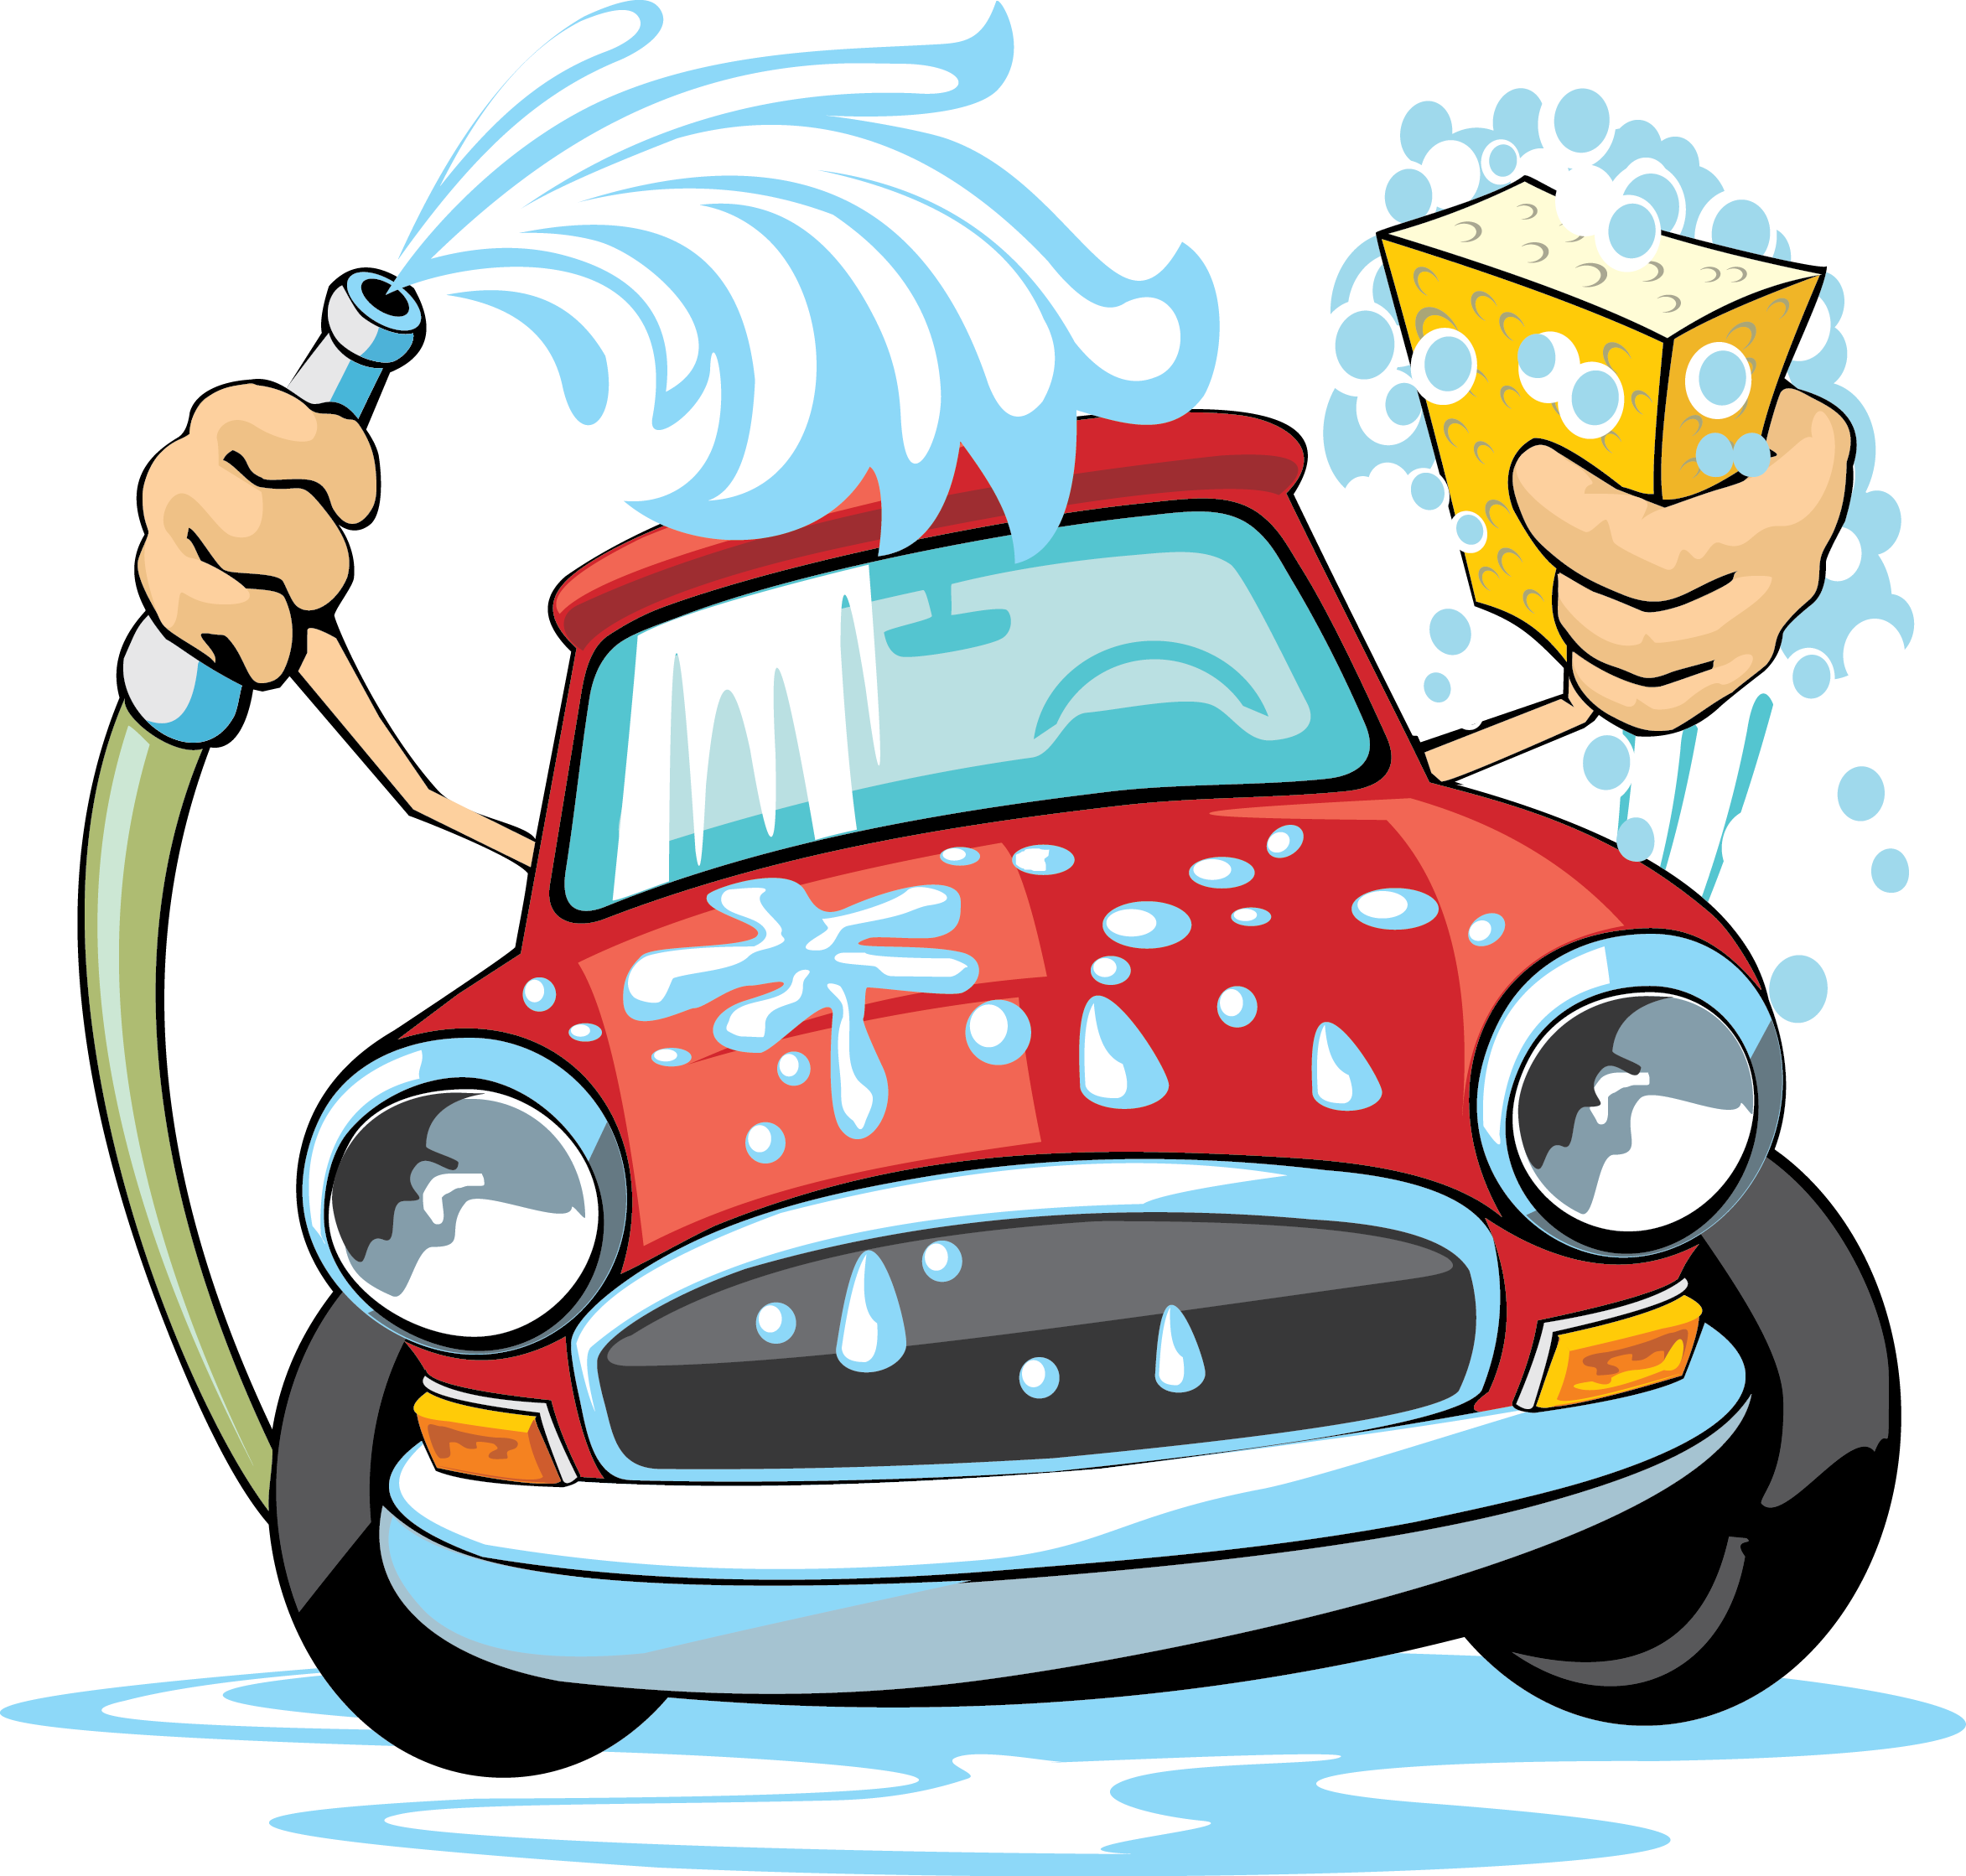 Car wash clipart png clipart freeuse stock Index of /wp-content/uploads/2018/03 clipart freeuse stock